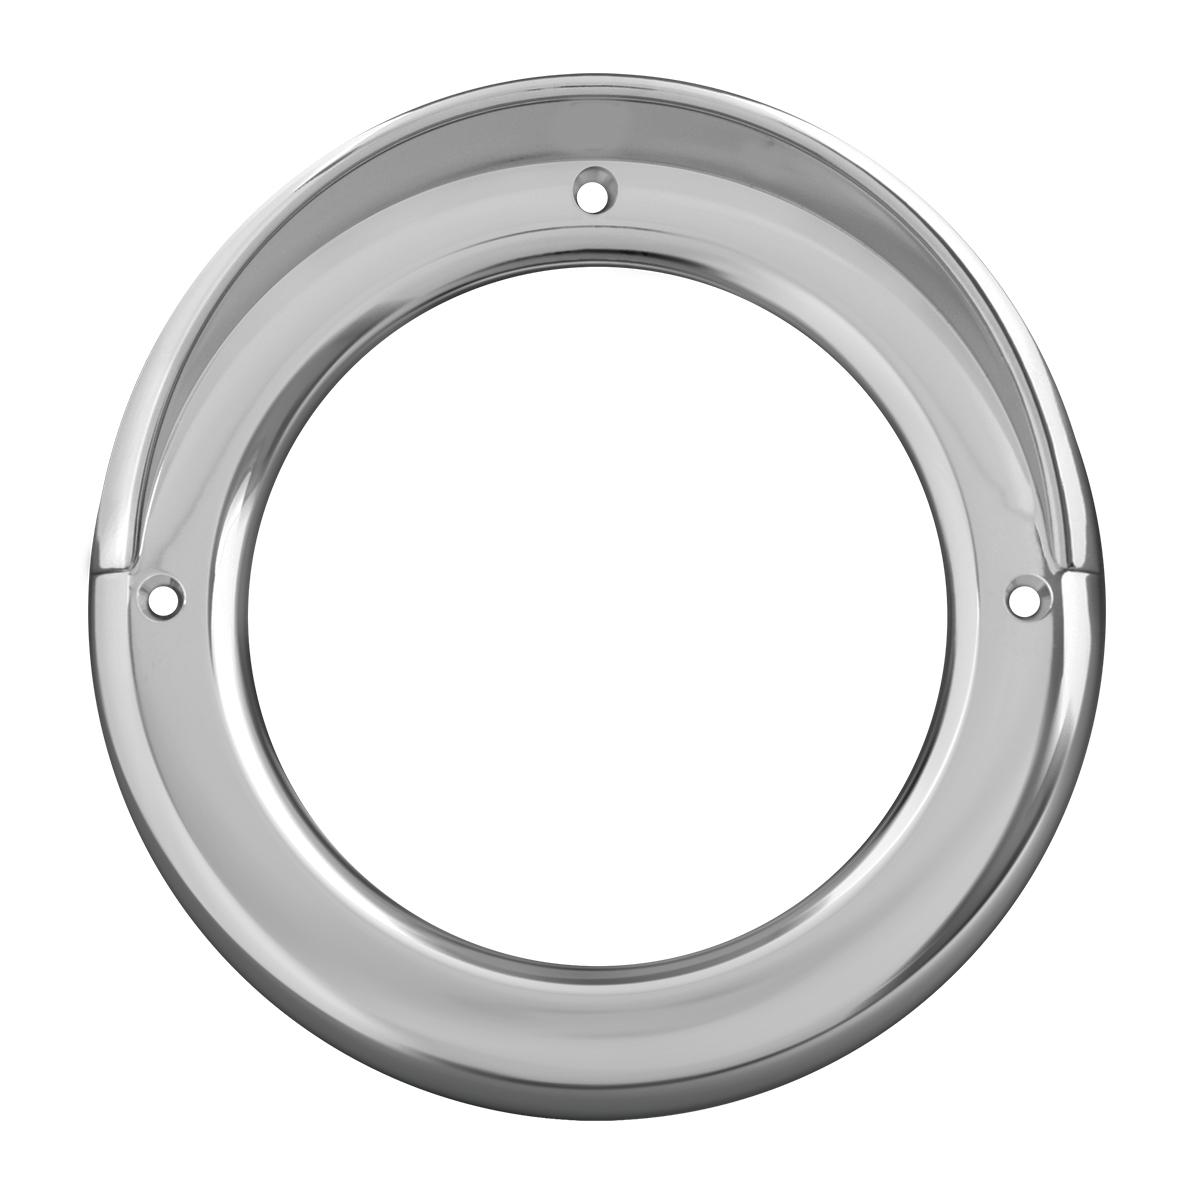 "80477 Chrome Plastic Grommet Cover w/ Visor for 4"" Round Light"